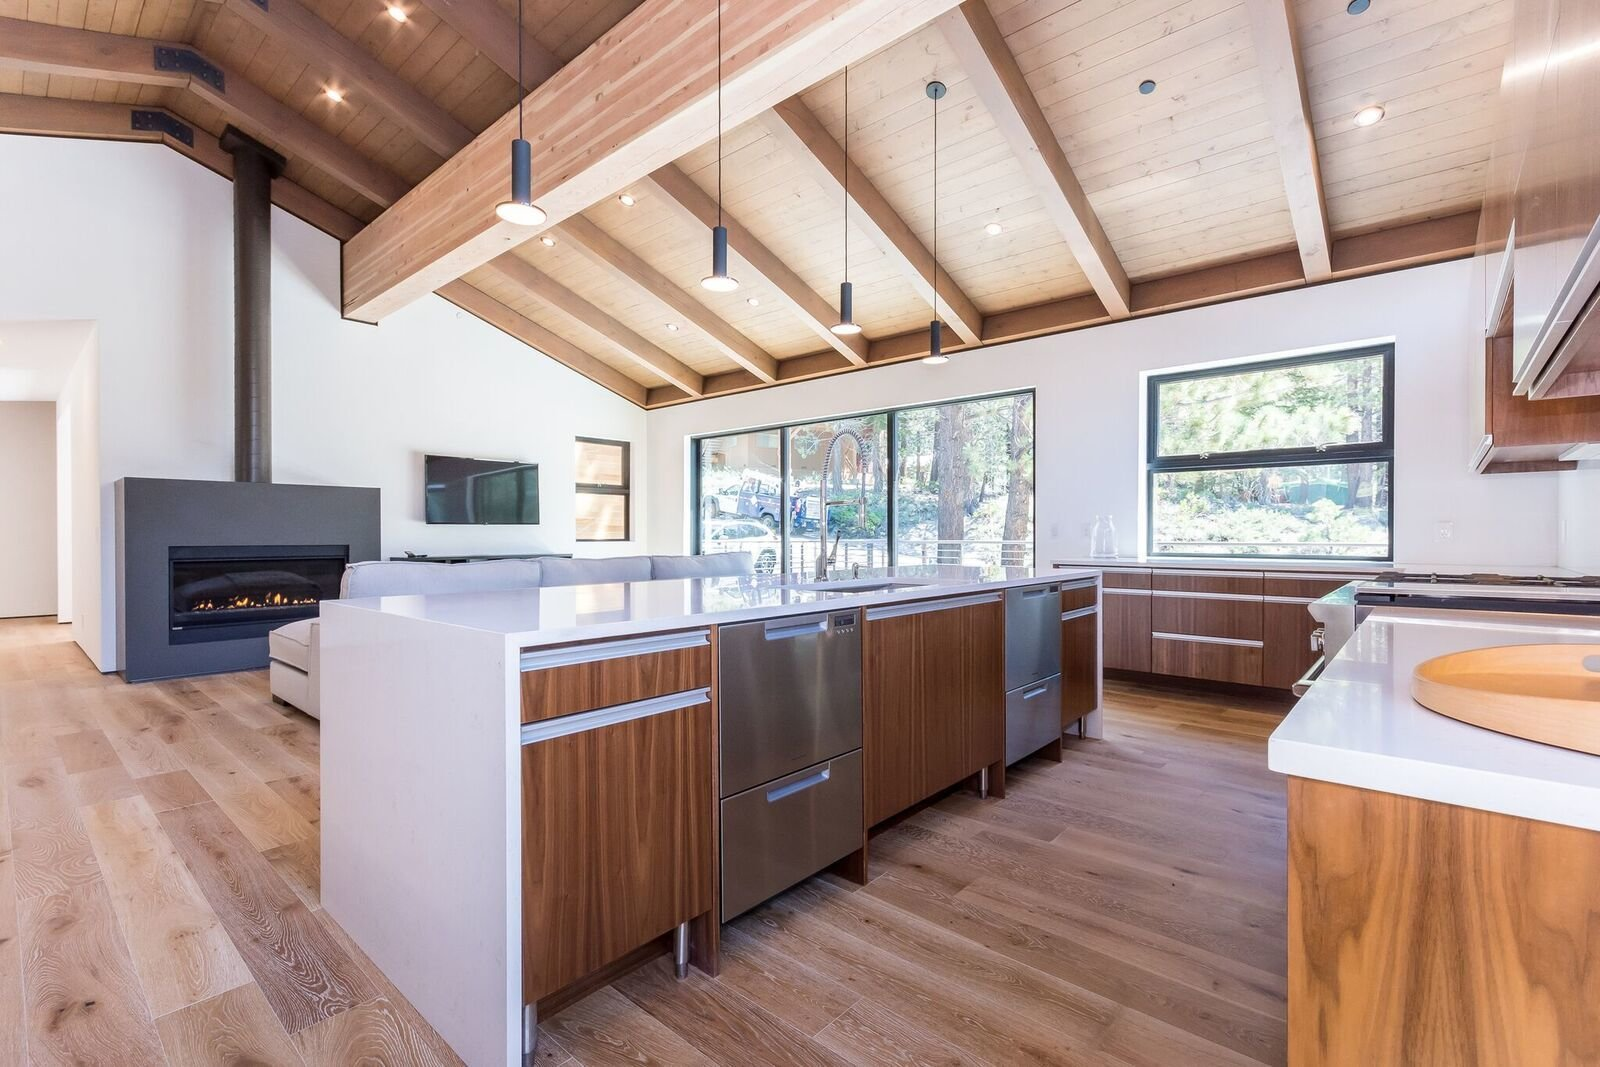 Dual dishdrawer units for holidays, large dinners, friends... Tagged: Kitchen, Quartzite Counter, Engineered Quartz Counter, Wood Cabinet, Ceiling Lighting, Pendant Lighting, Dishwasher, Undermount Sink, and Medium Hardwood Floor.  Mammoth Modern House 1 by Amy Kramer